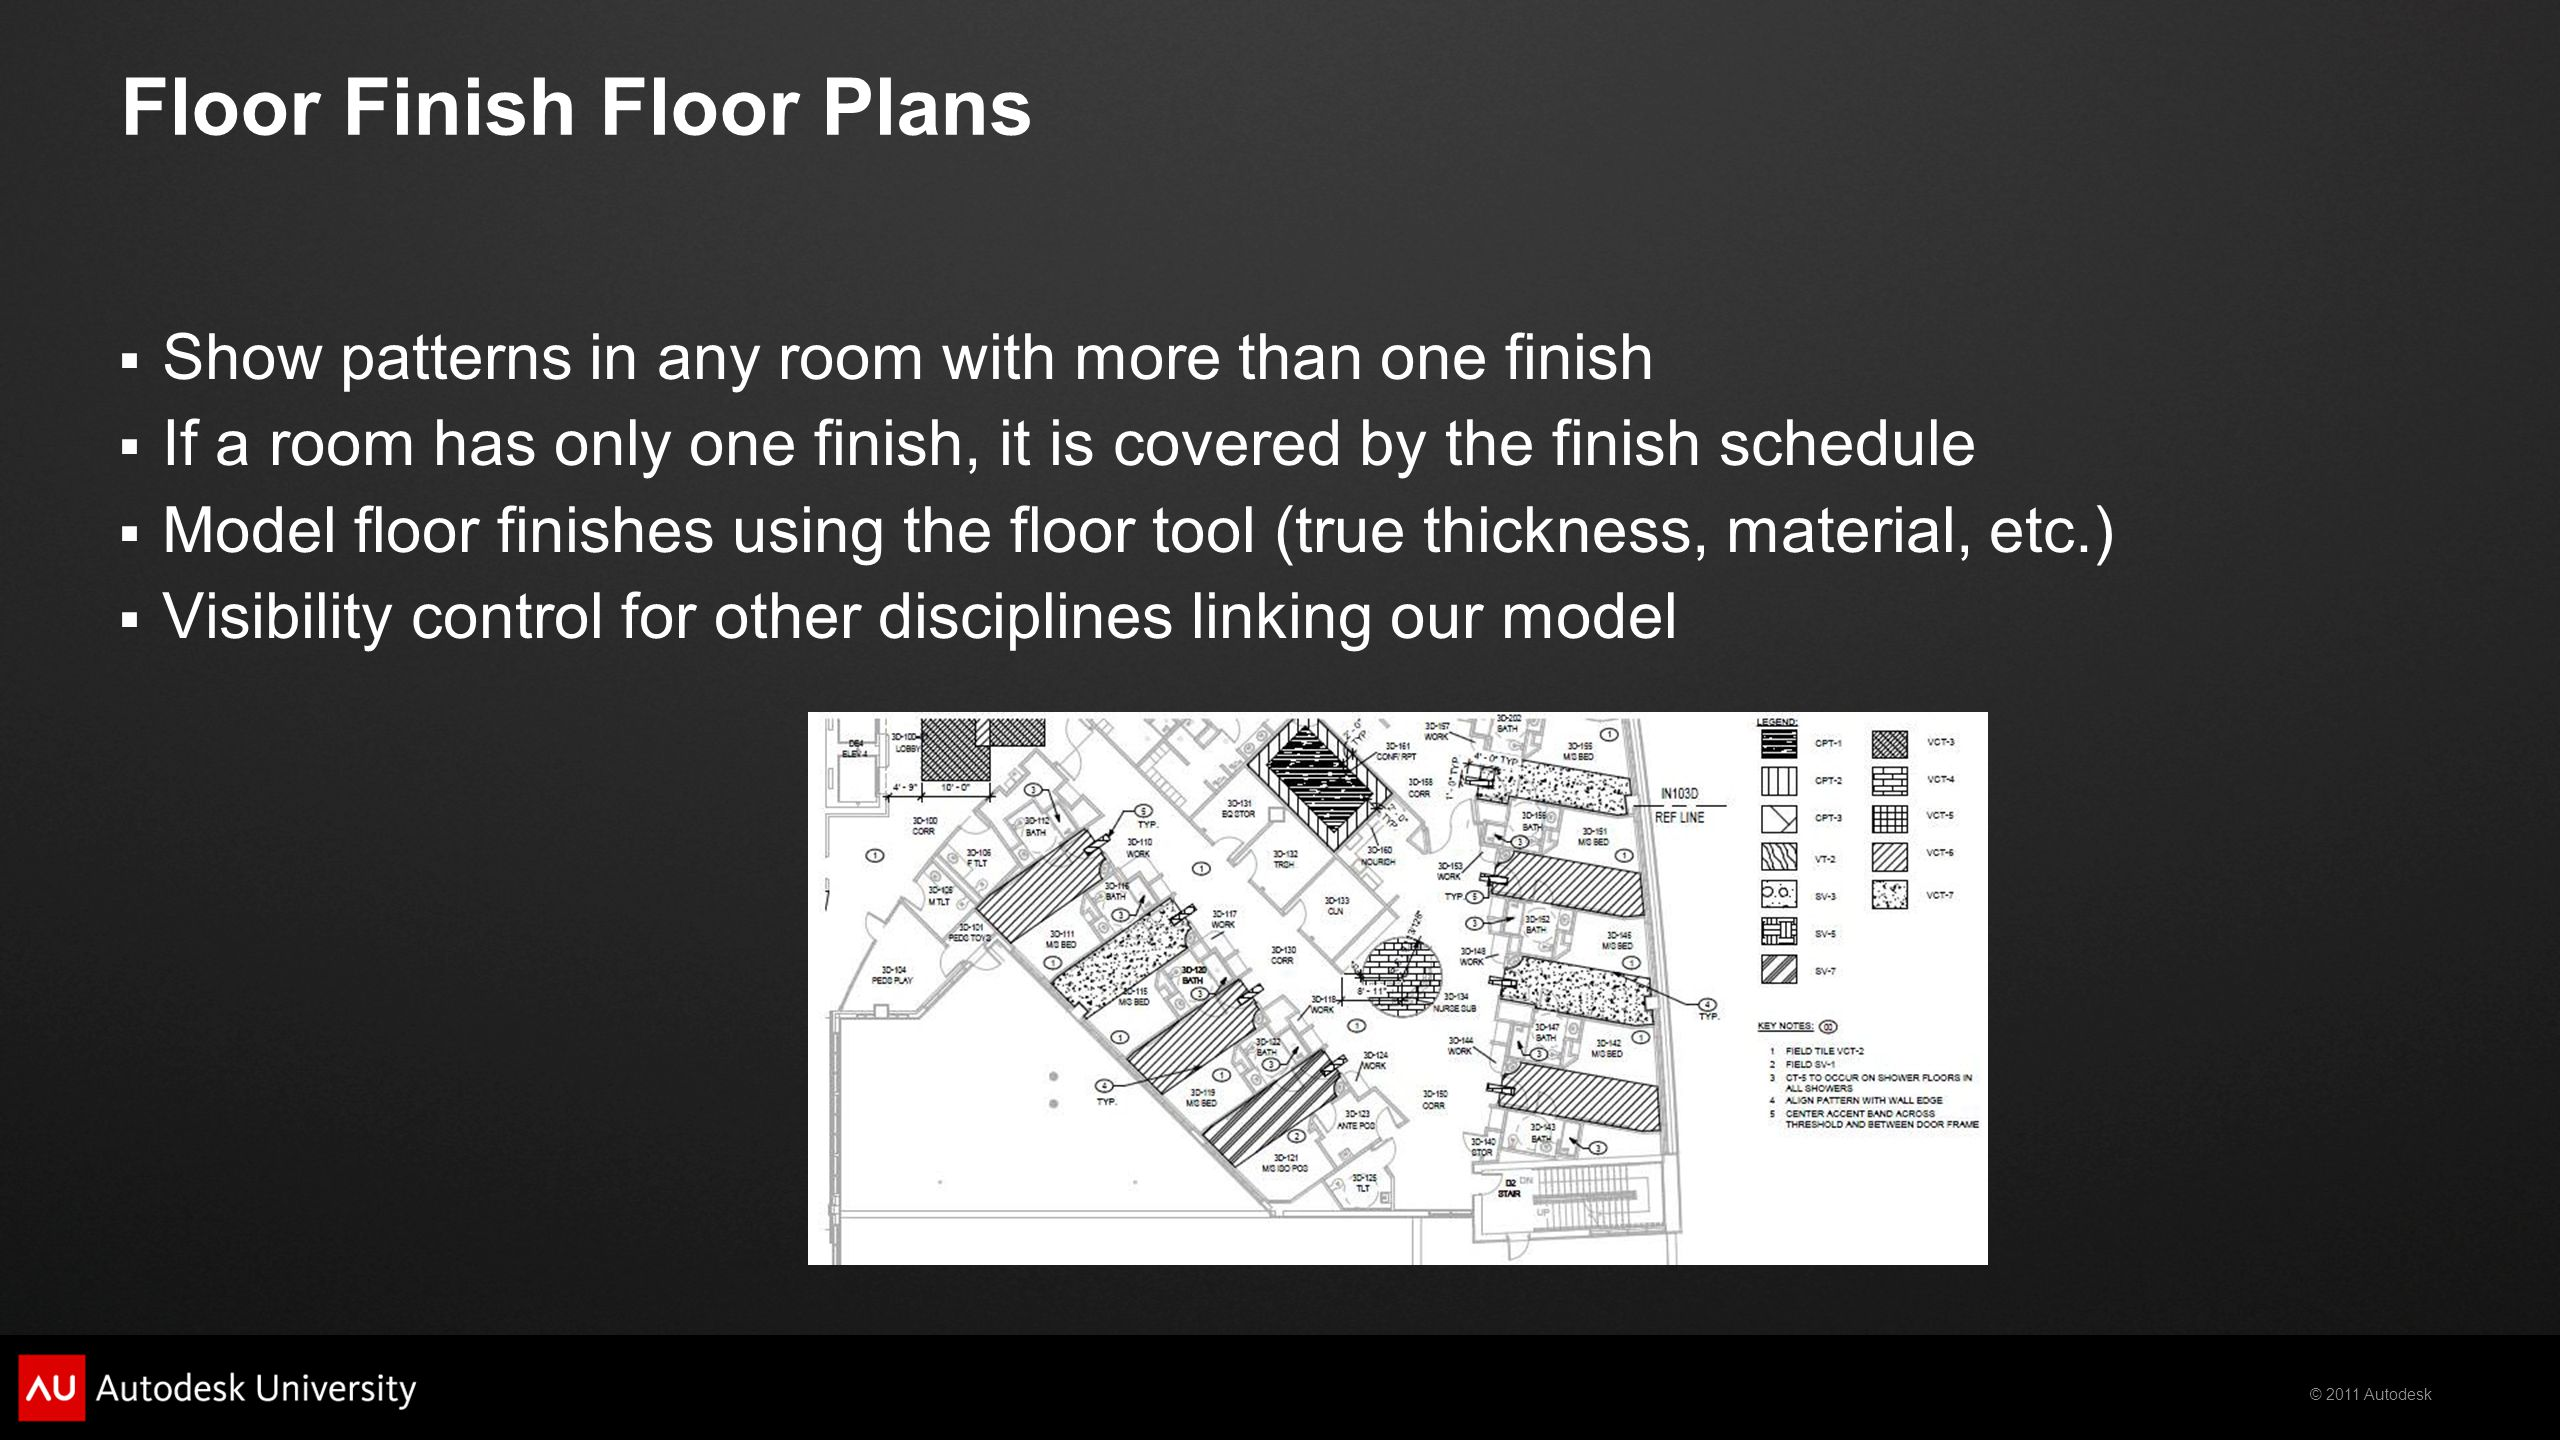 Floor Finish Floor Plans